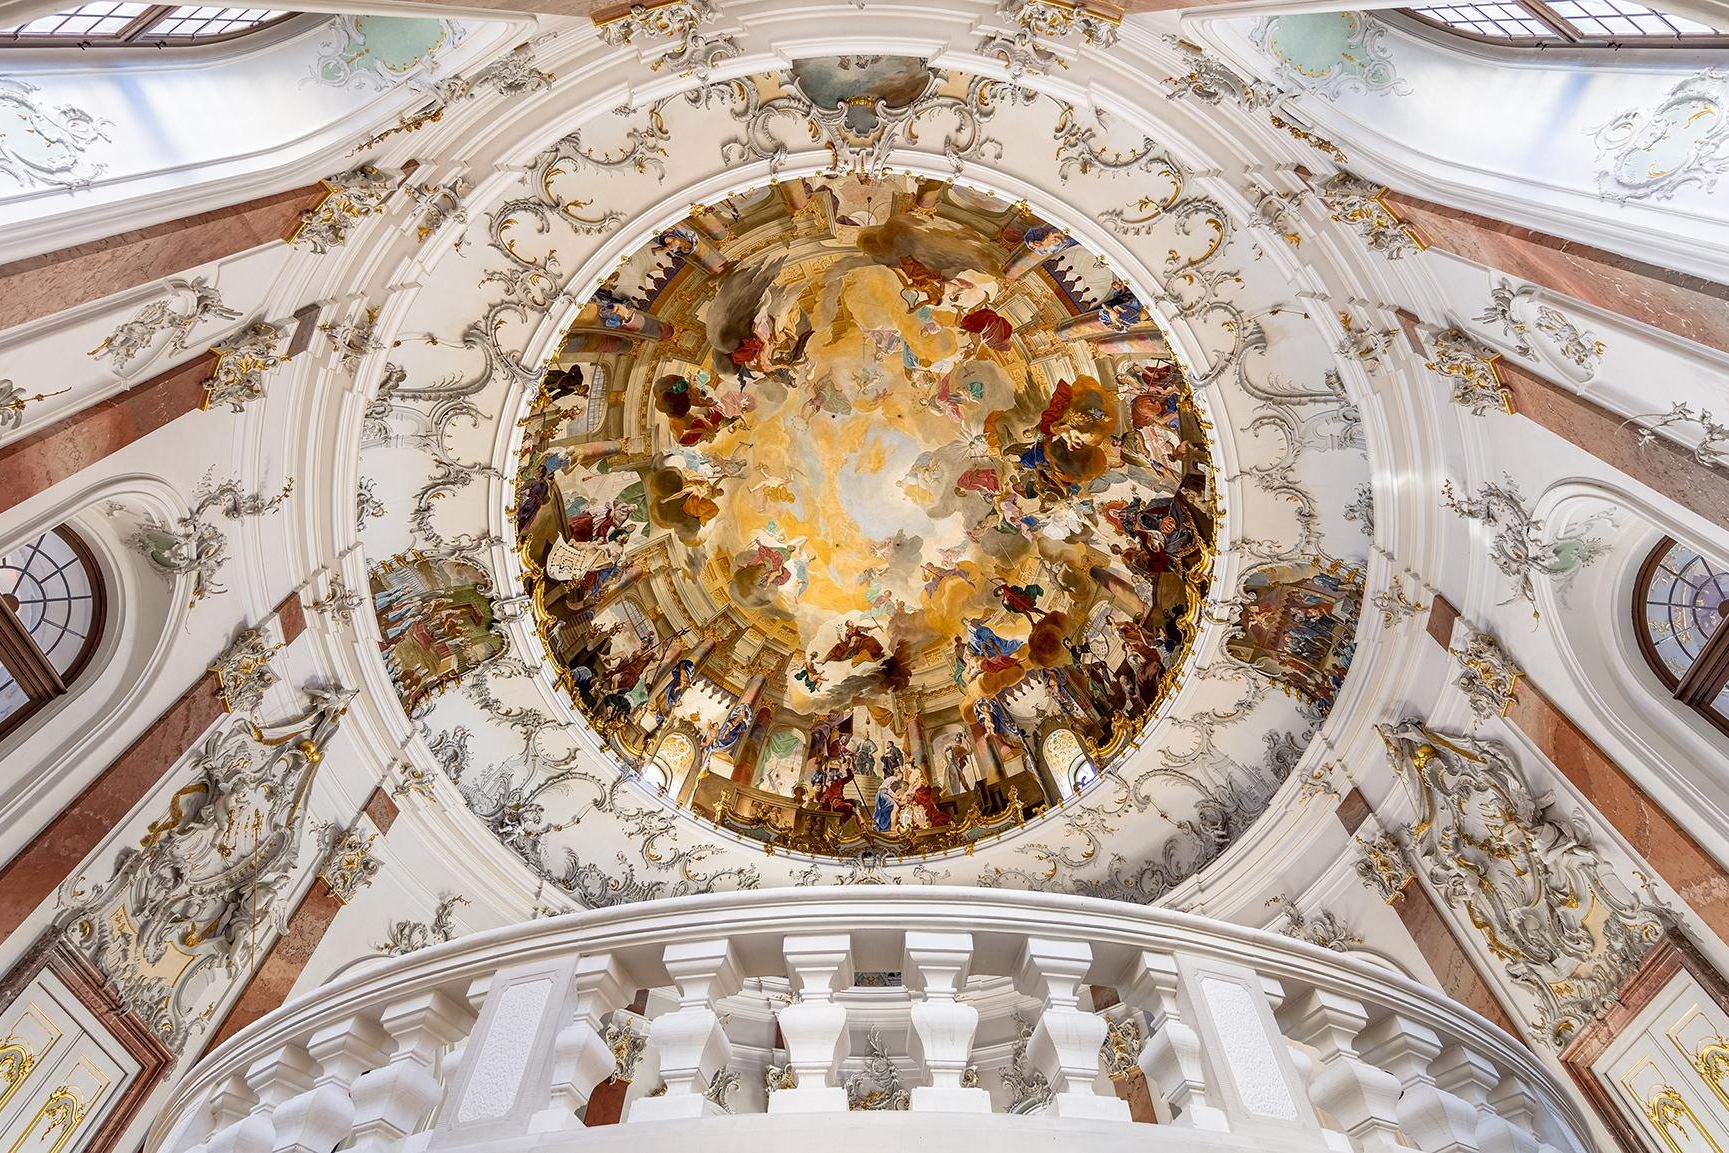 Bruchsal Palace, ceiling fresco; photo: Dr Manfred Schneider, Nußloch, www.manfred-schneider.de